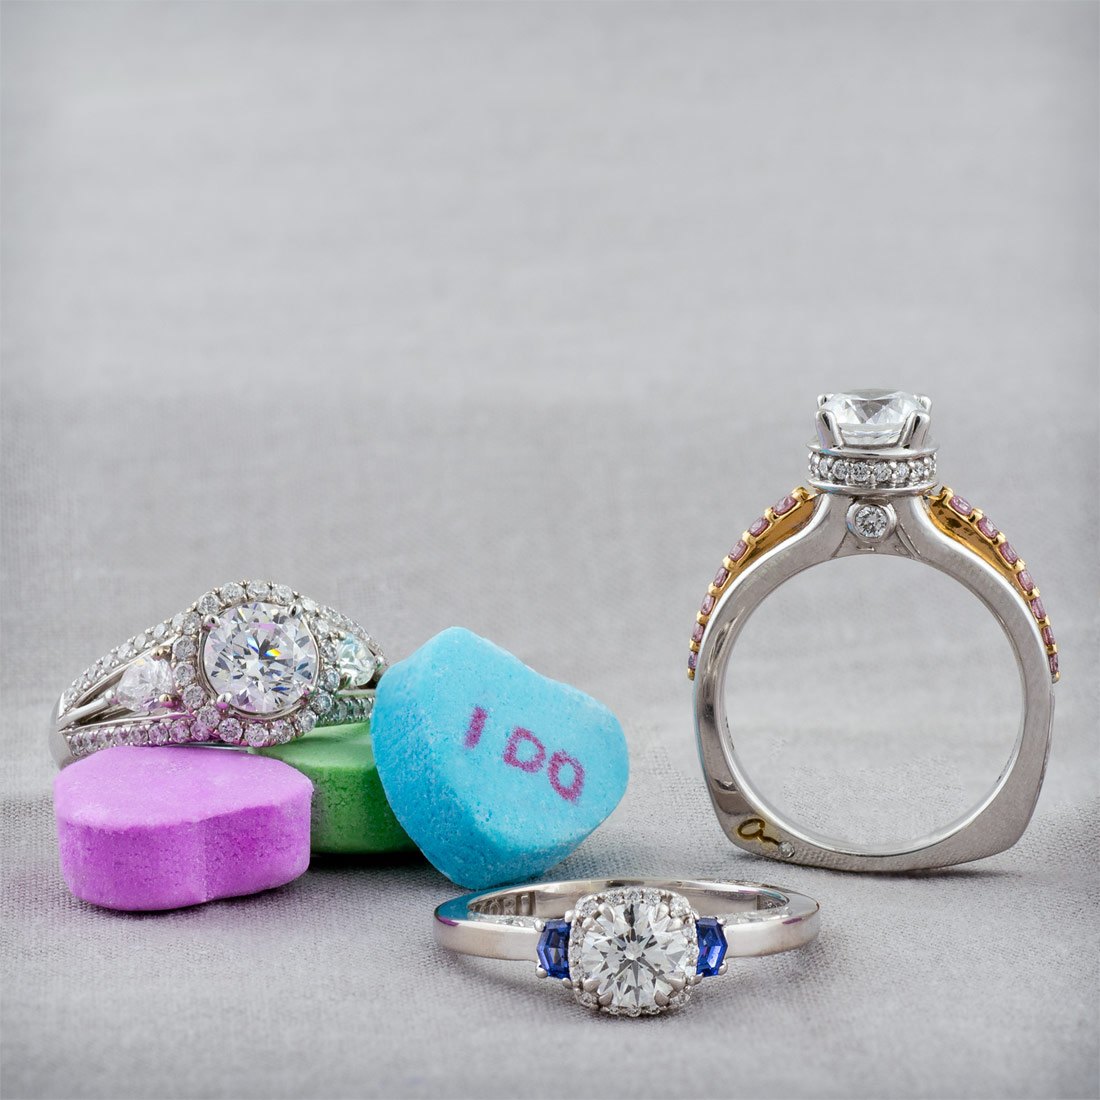 Designer engagement ring sale at Arden Jewelers